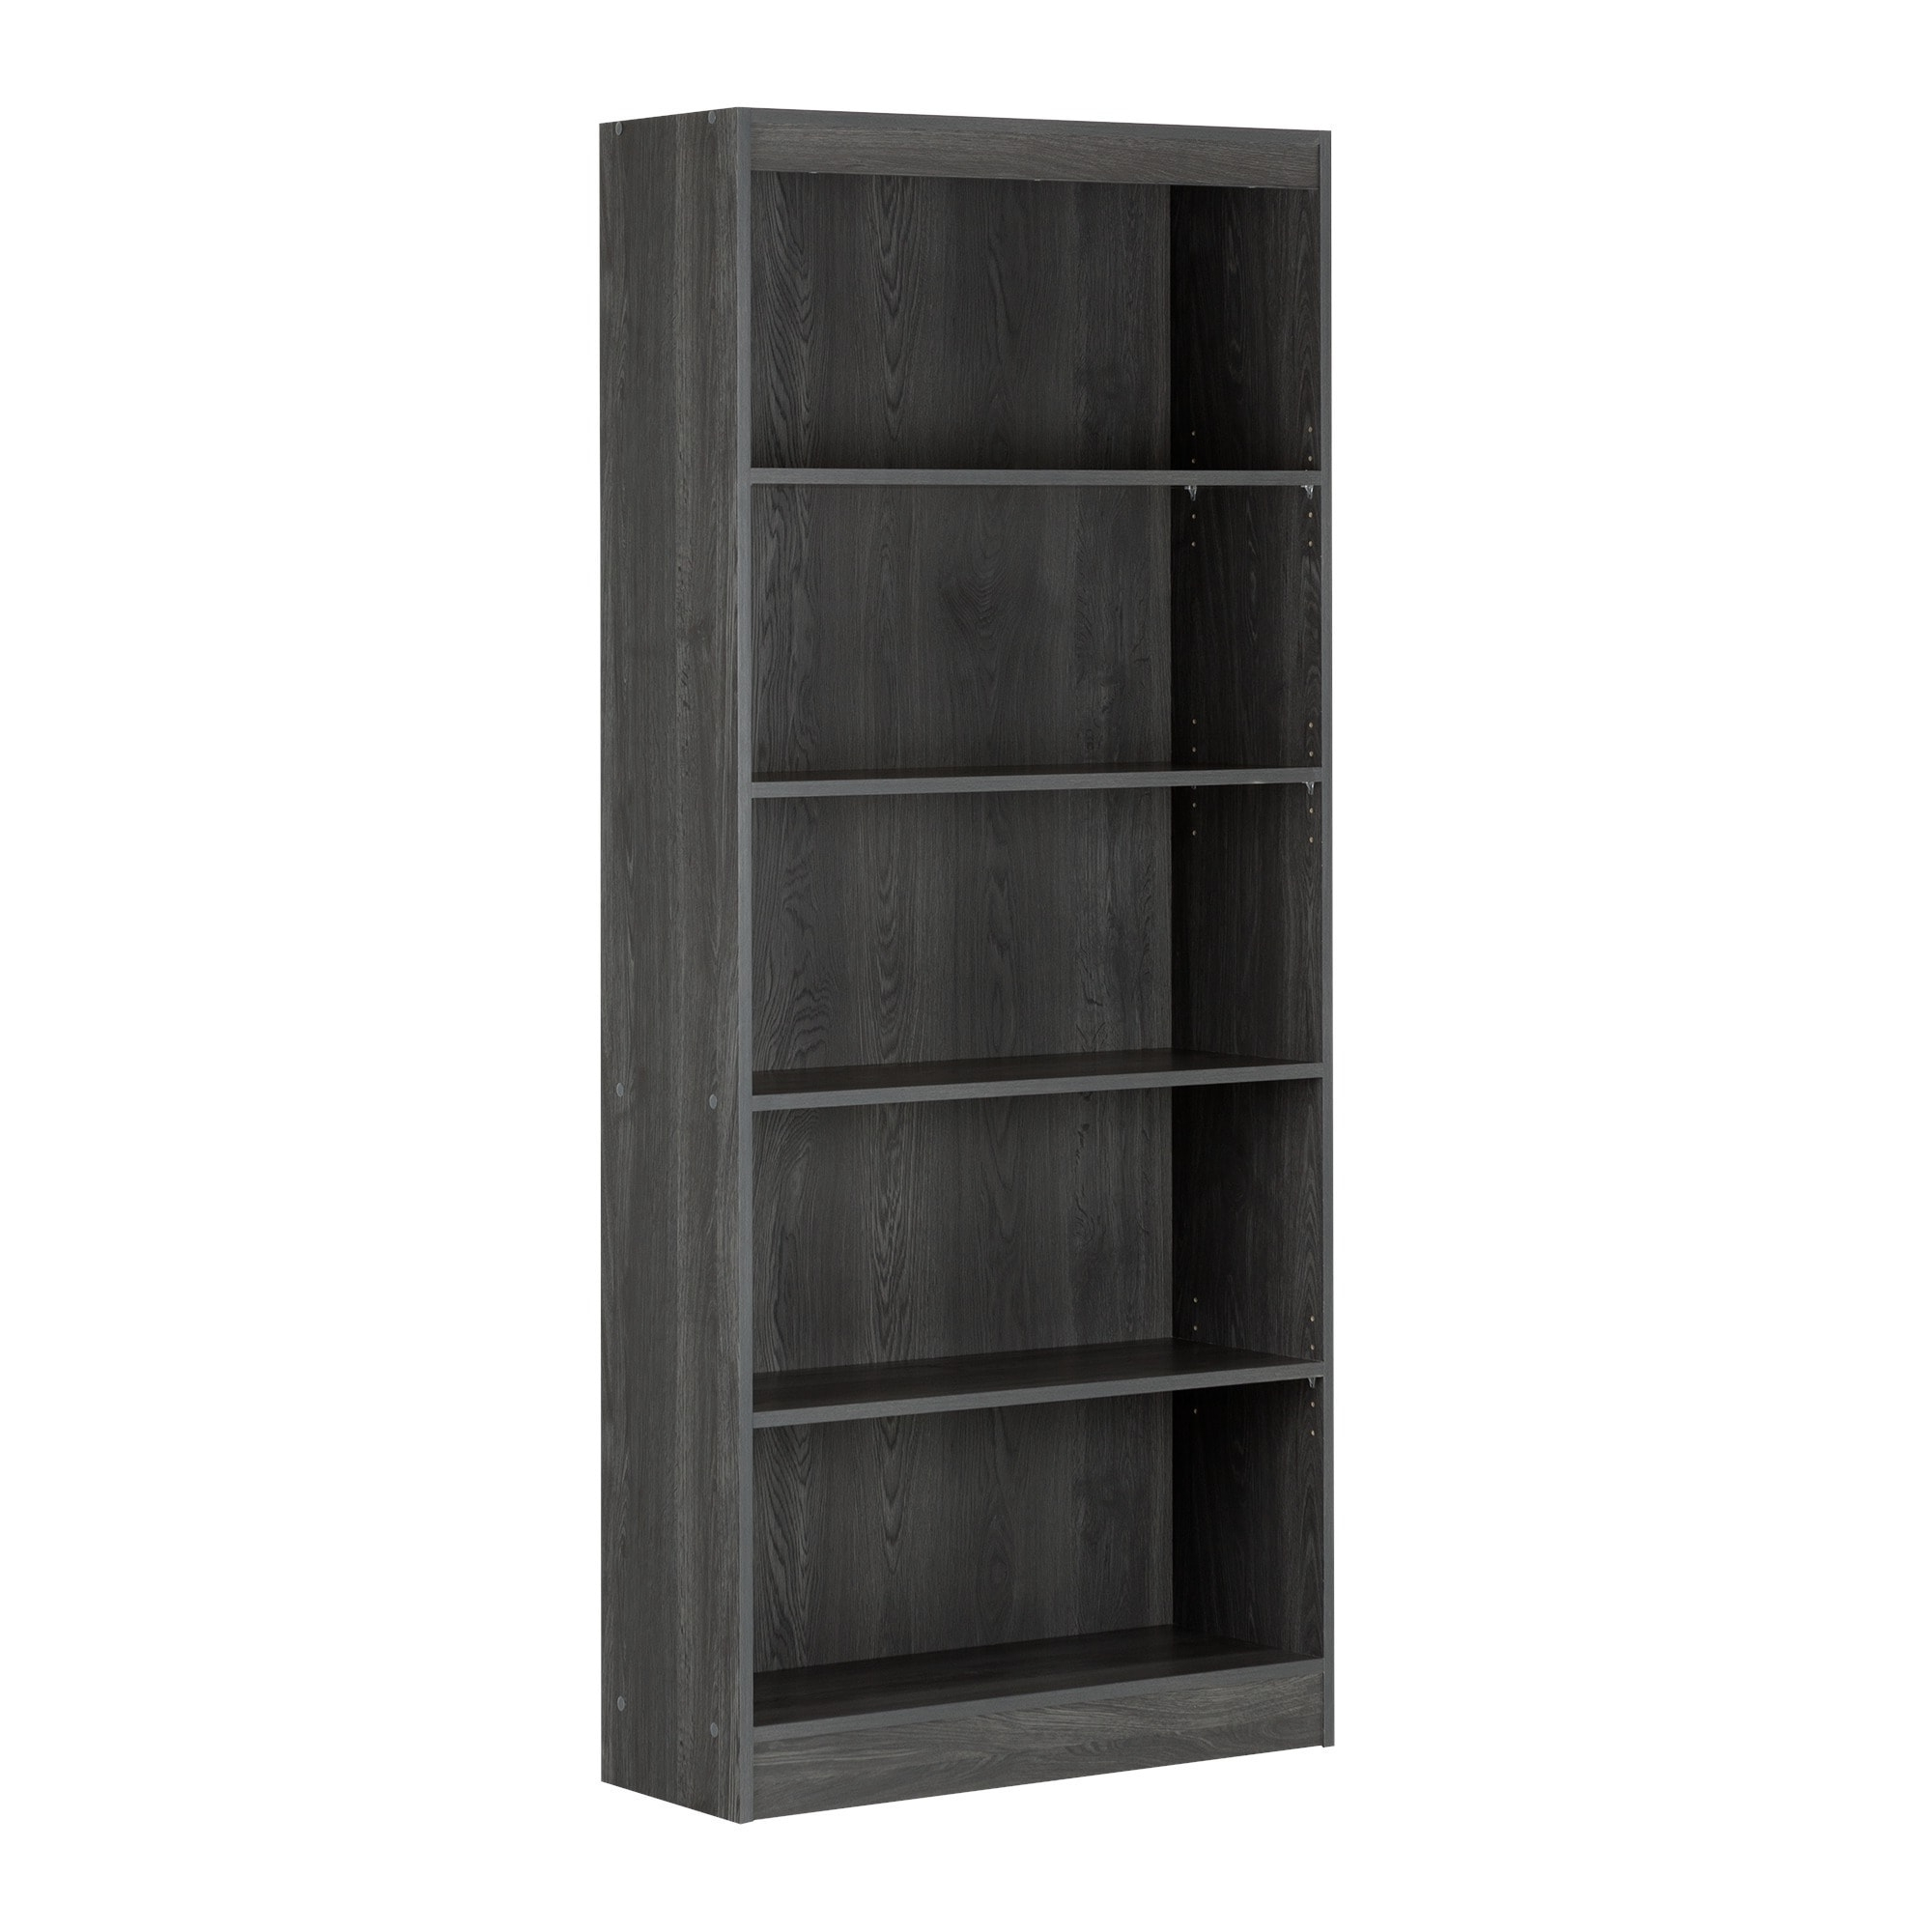 5 Shelf Bookcase – Free Shipping Today – Overstock – 17190441 Intended For Most Popular Room Essentials 5 Shelf Bookcases (Gallery 13 of 15)